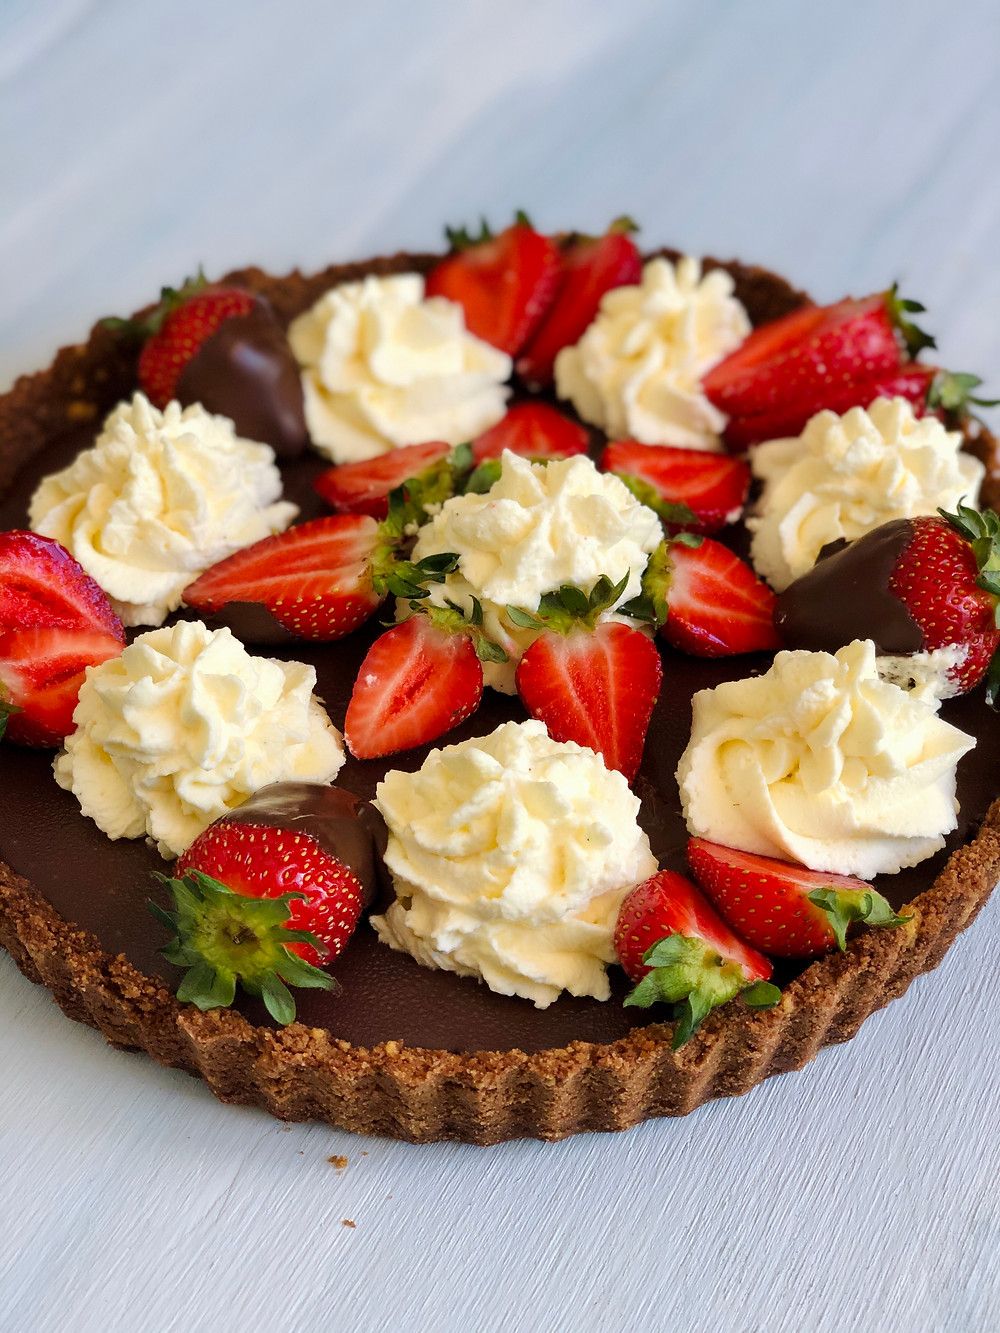 Chocolate  pie with fresh strawberries and whipped cream on top